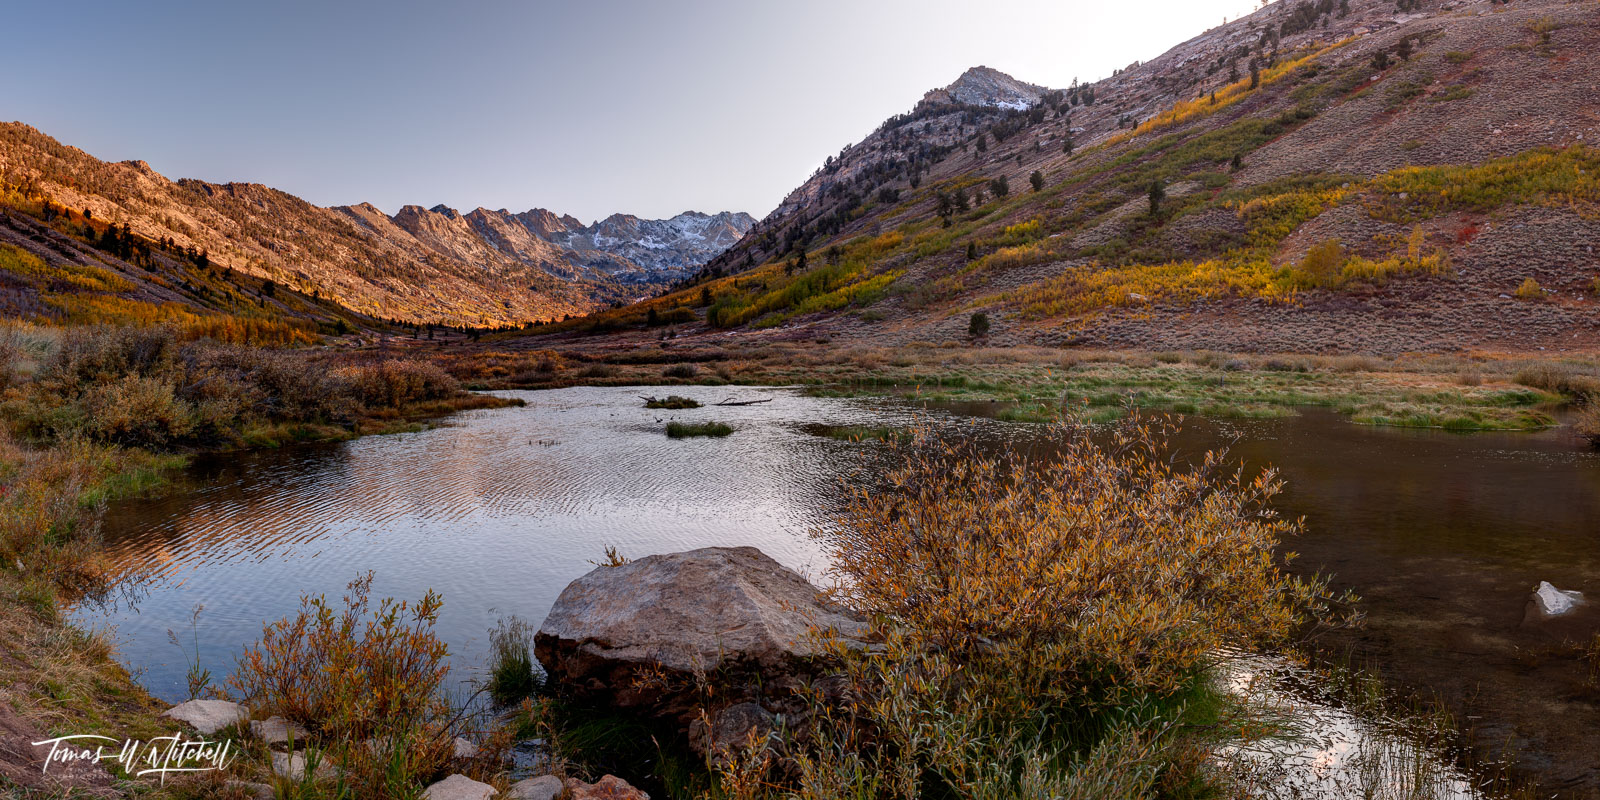 limited edition, lamoille canyon, nevada, bolder, grass, leaves, photograph, willow bush, reflections, pond, aspen trees, yellow, fall colors, peaks, snow, autumn, panoramic, photo